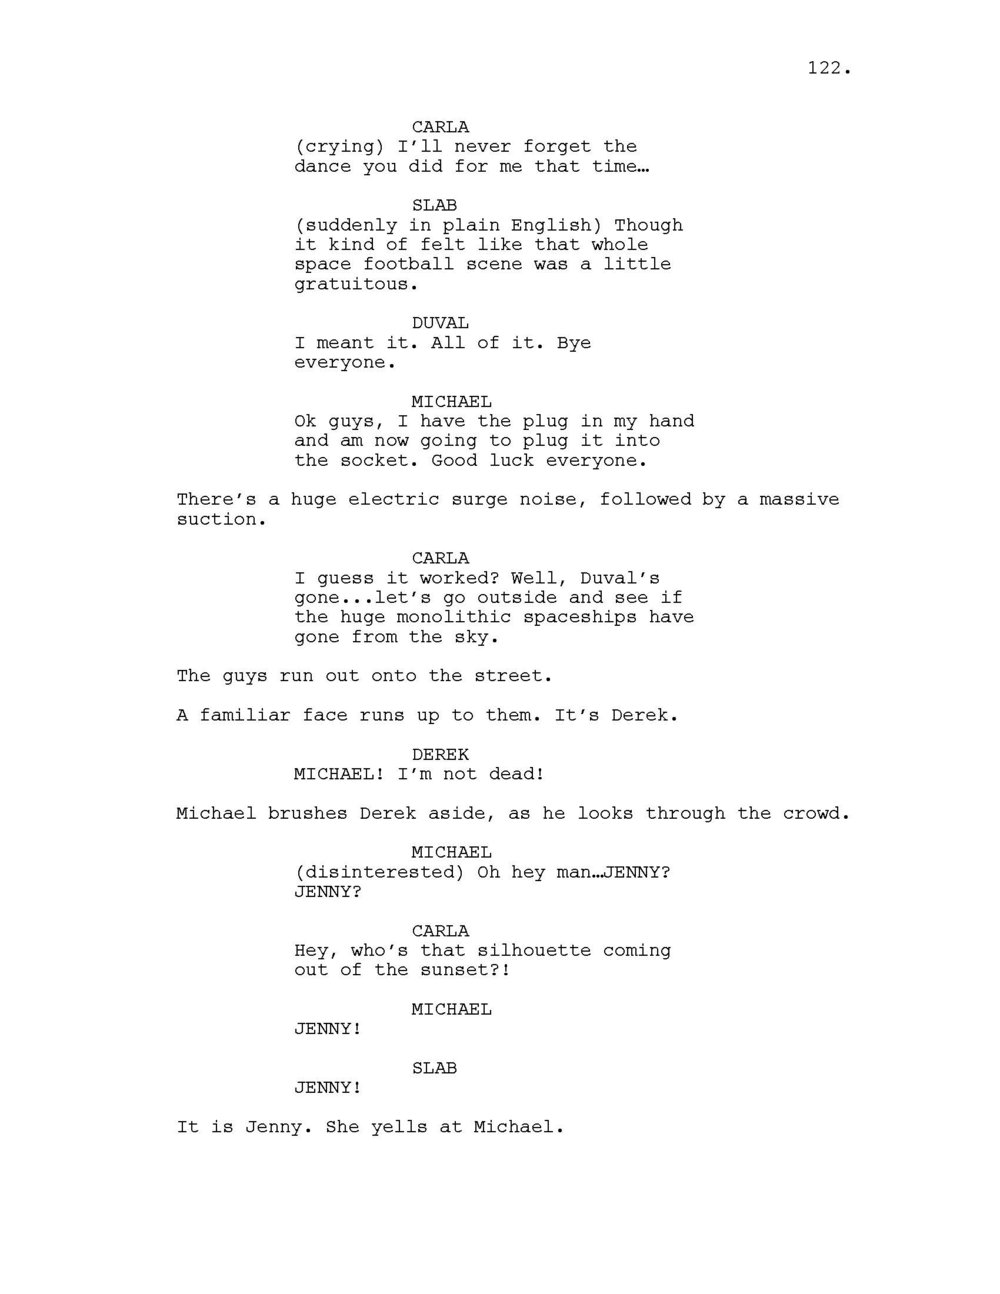 INVISIBLE WORLD SCRIPT_Page_123.jpg